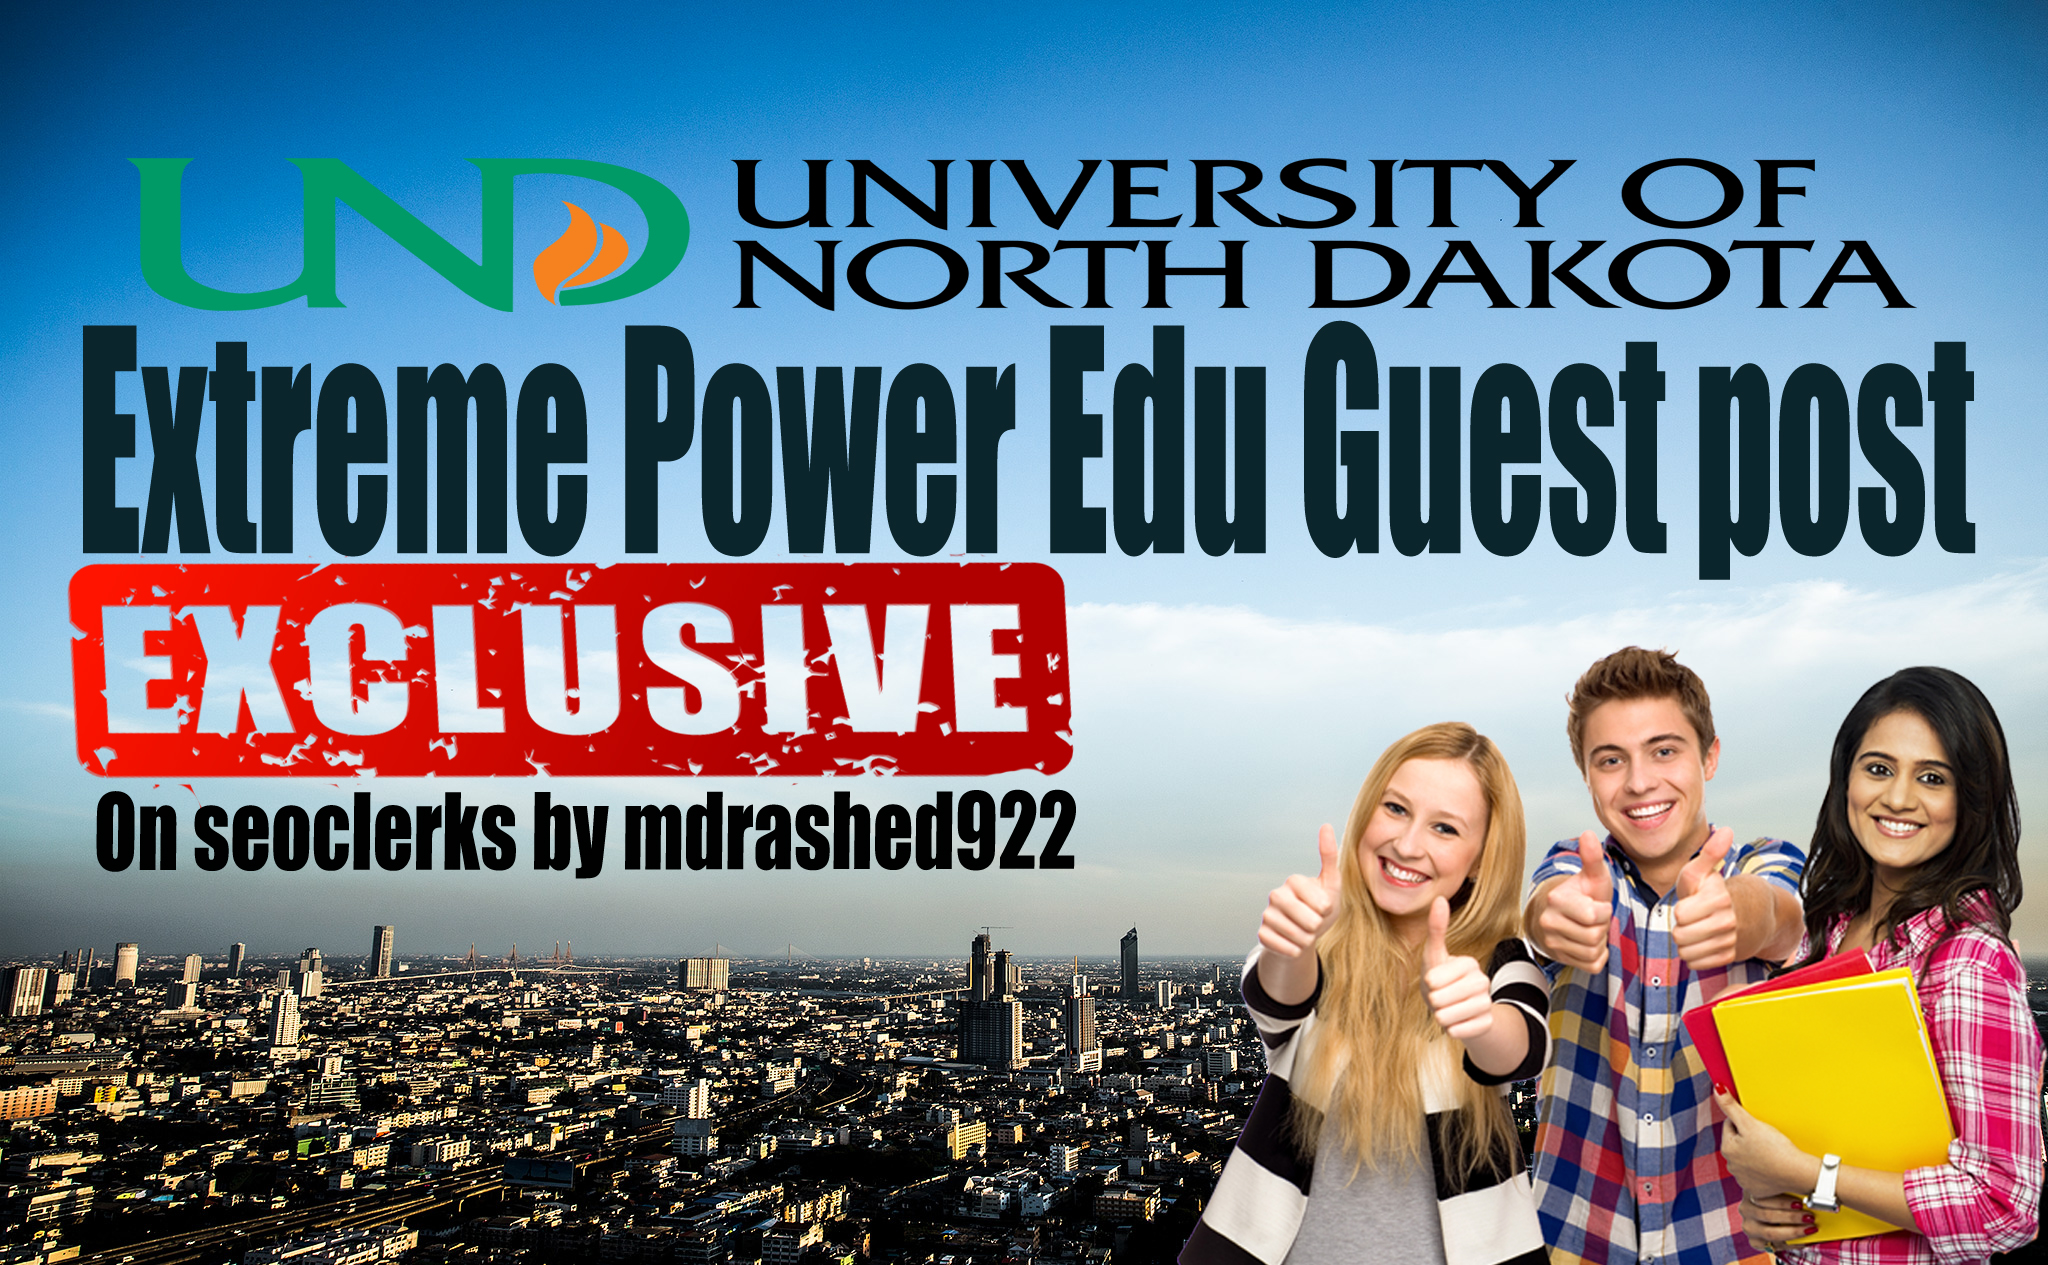 Extreme Power Edu Guest post on University of North Dakota Education blog DA81 & dofollow backlinks